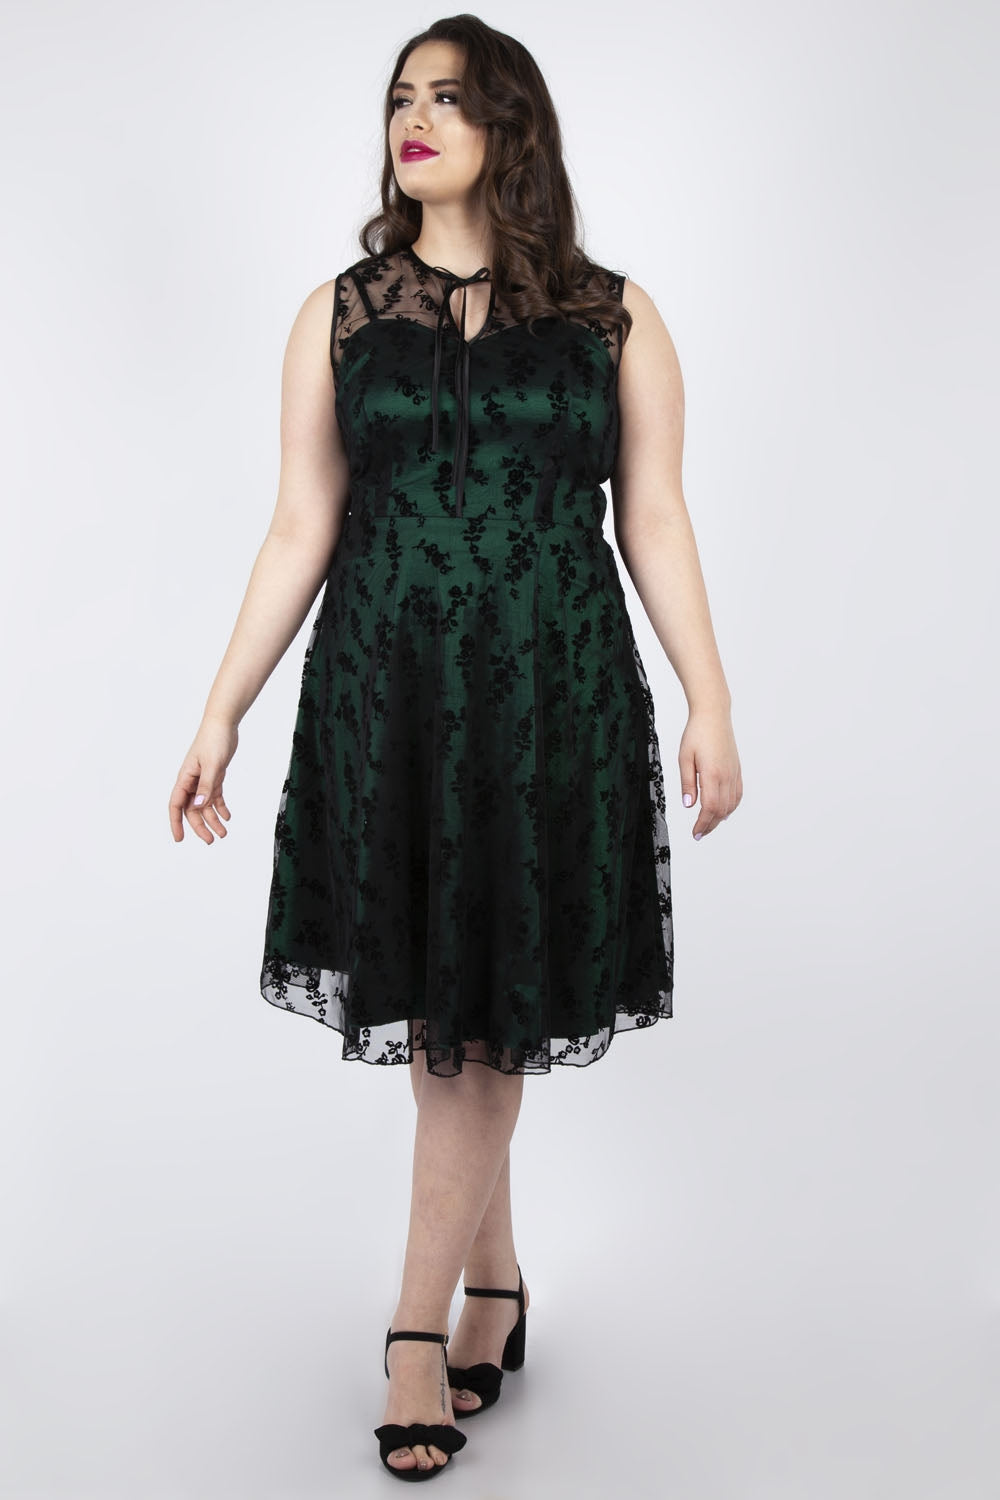 Esme 1950s Sweetheart Dress in Emerald